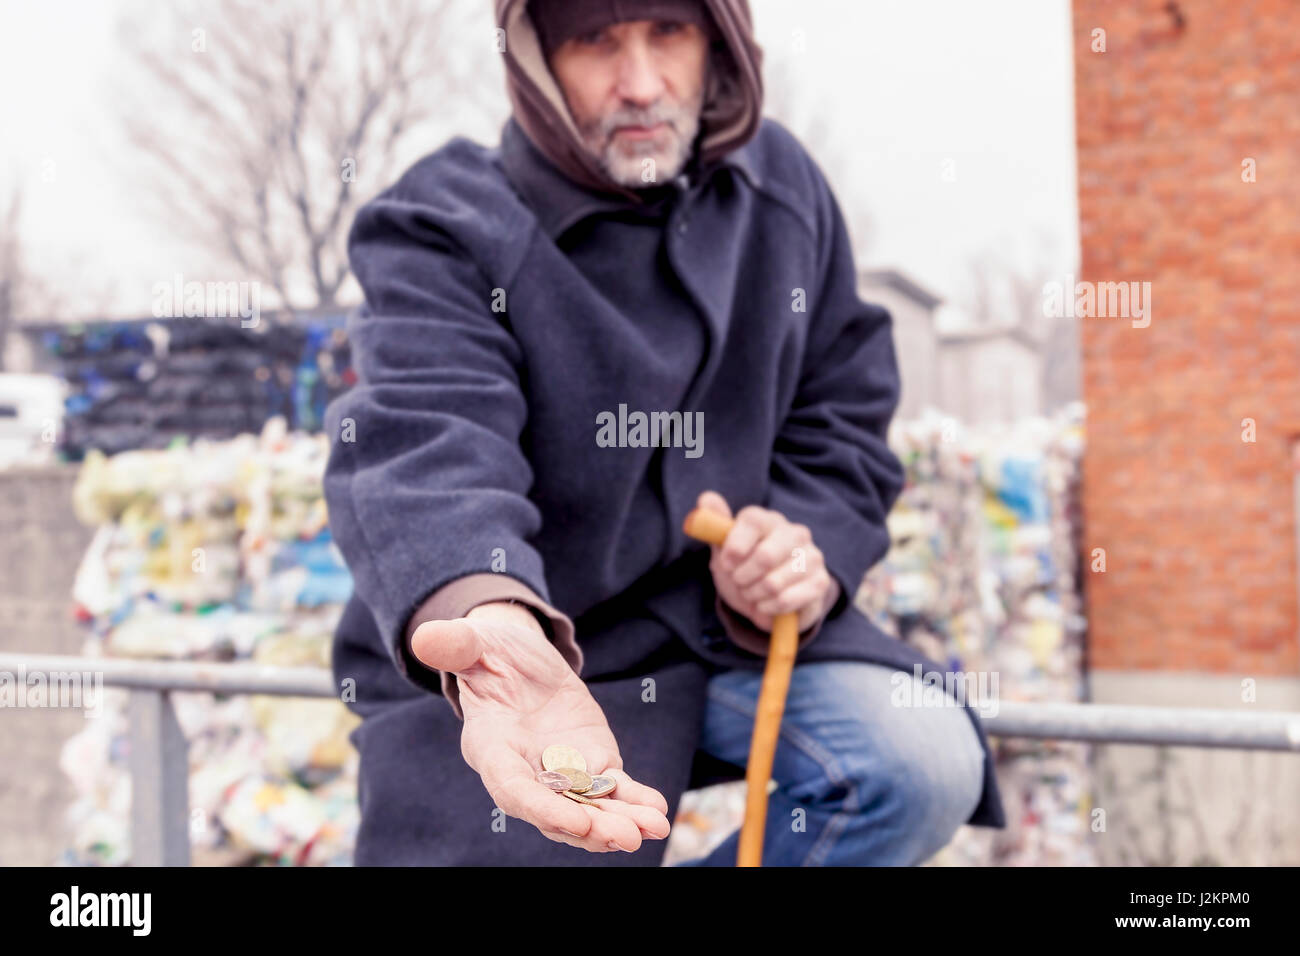 homeless asks charity in landfill - Stock Image